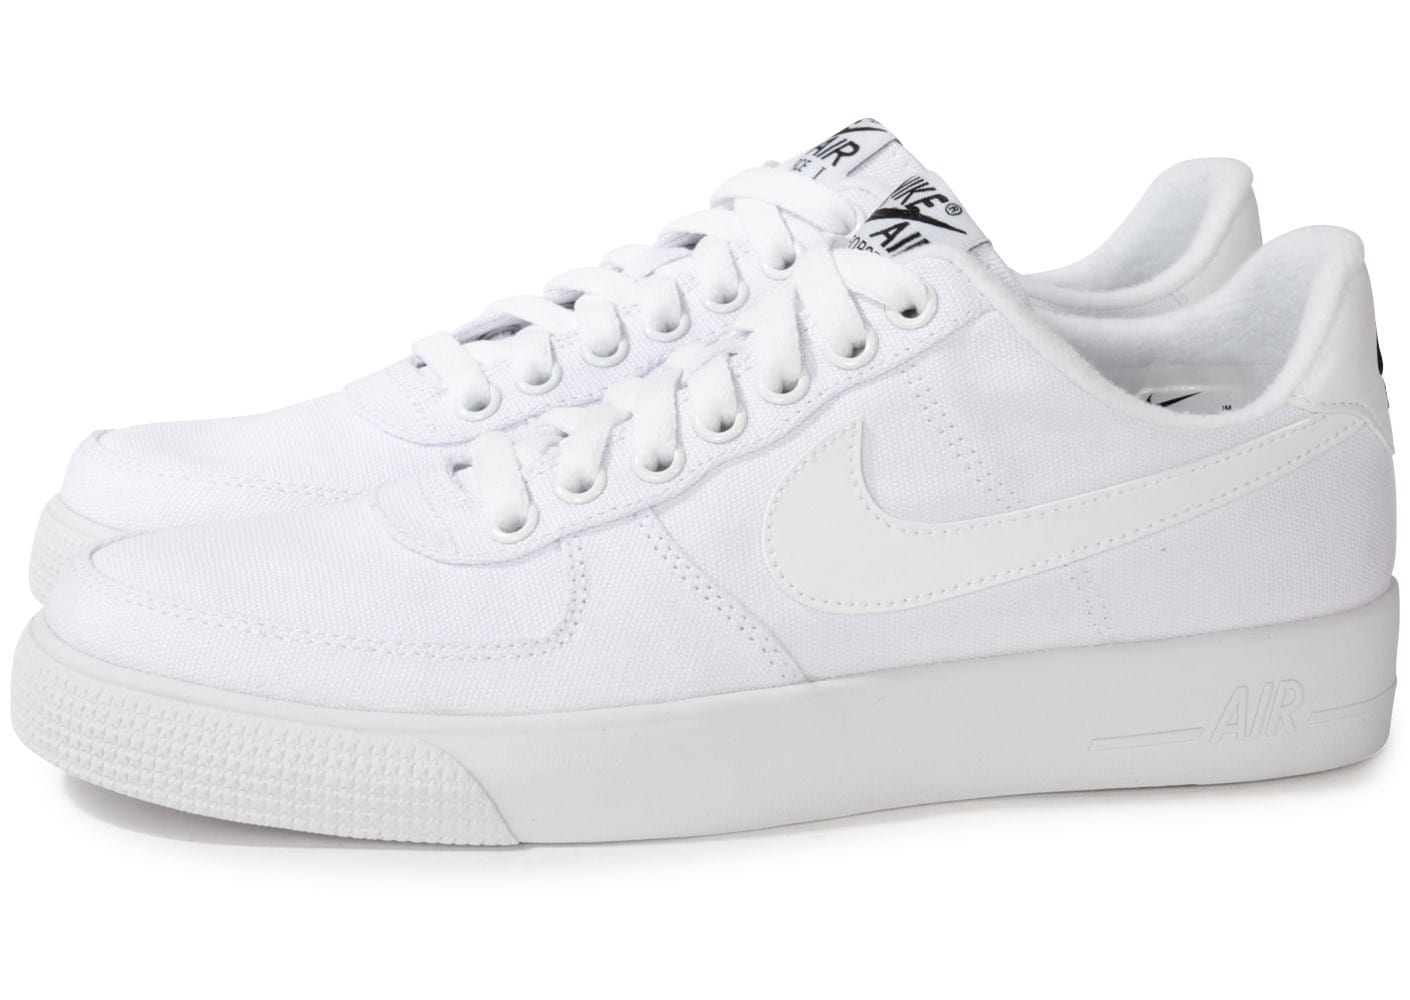 Ac Nike Blanche Baskets Chausport Force 1 Homme Air Chaussures WD2E9YHI